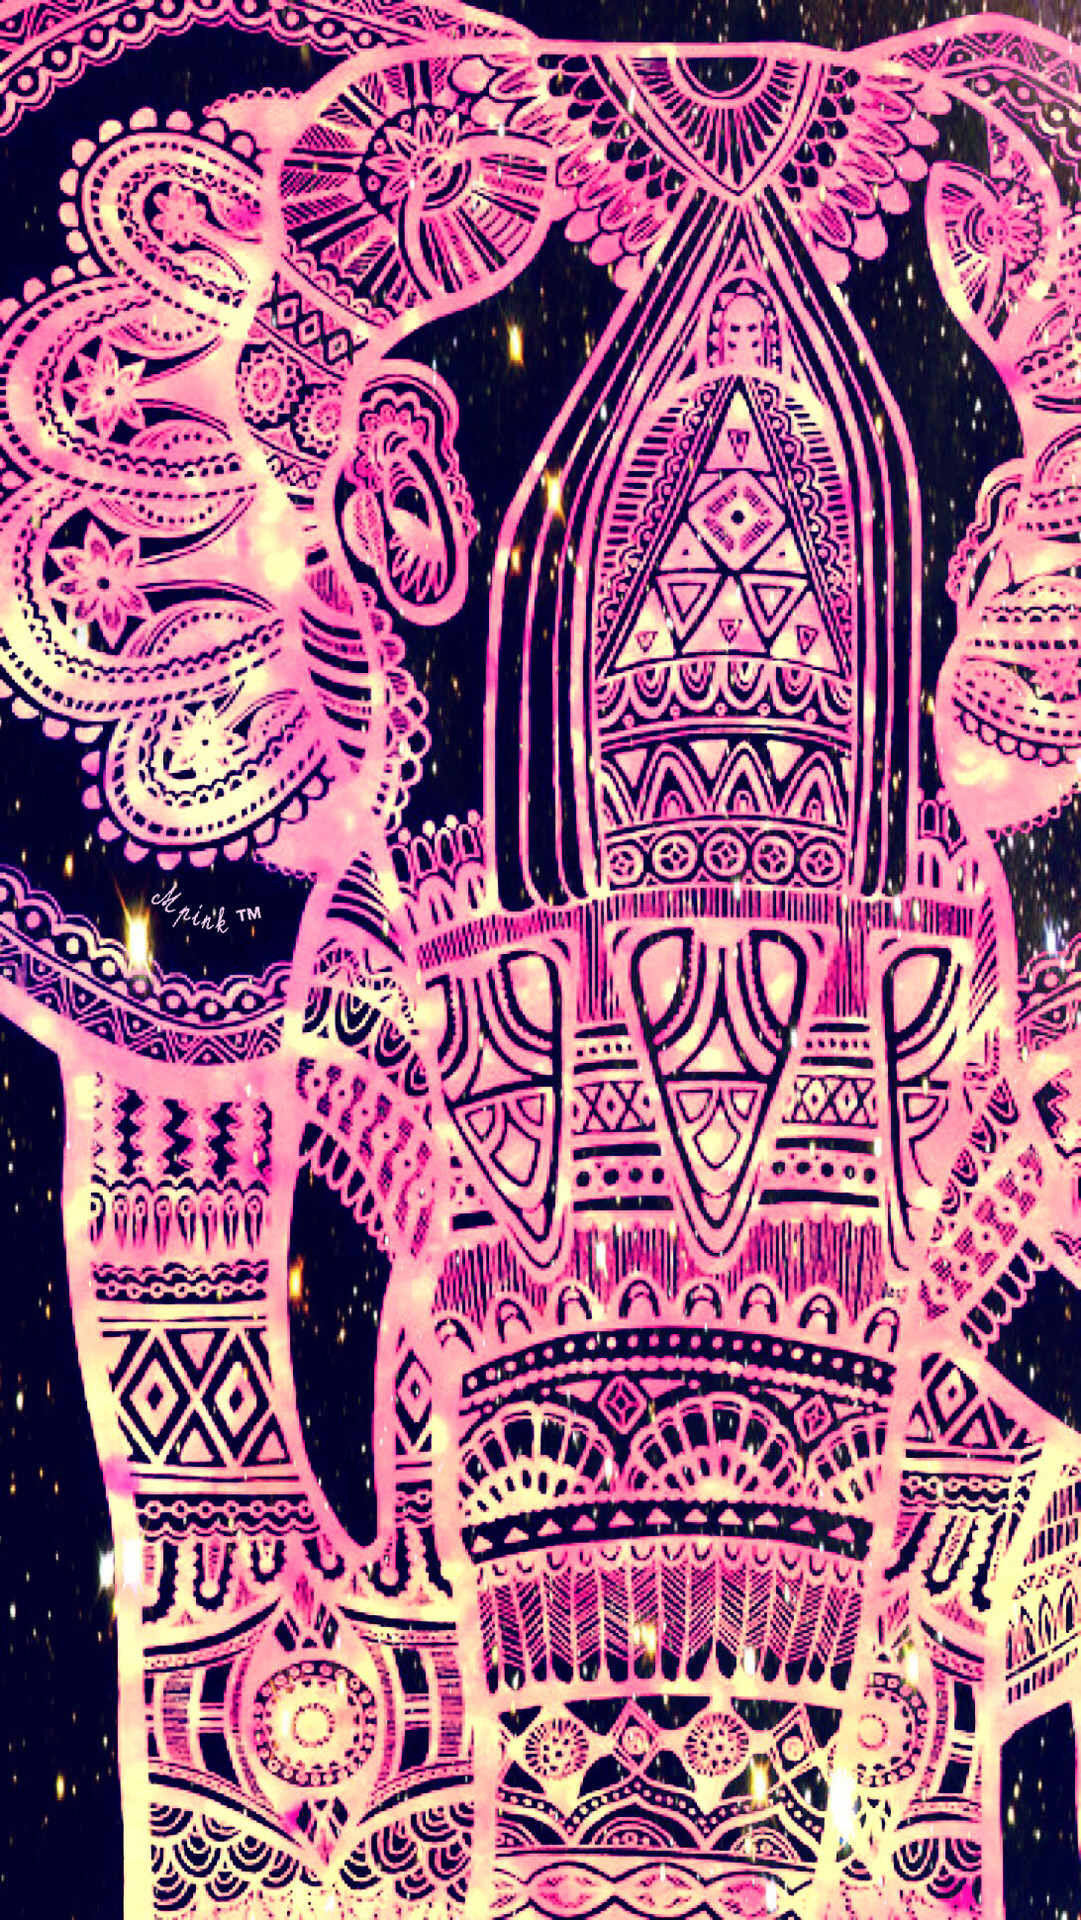 Tribal Pink Elephant Wallpaper/Lockscreen Girly, Cute, Wallpapers for  iPhone, Android,